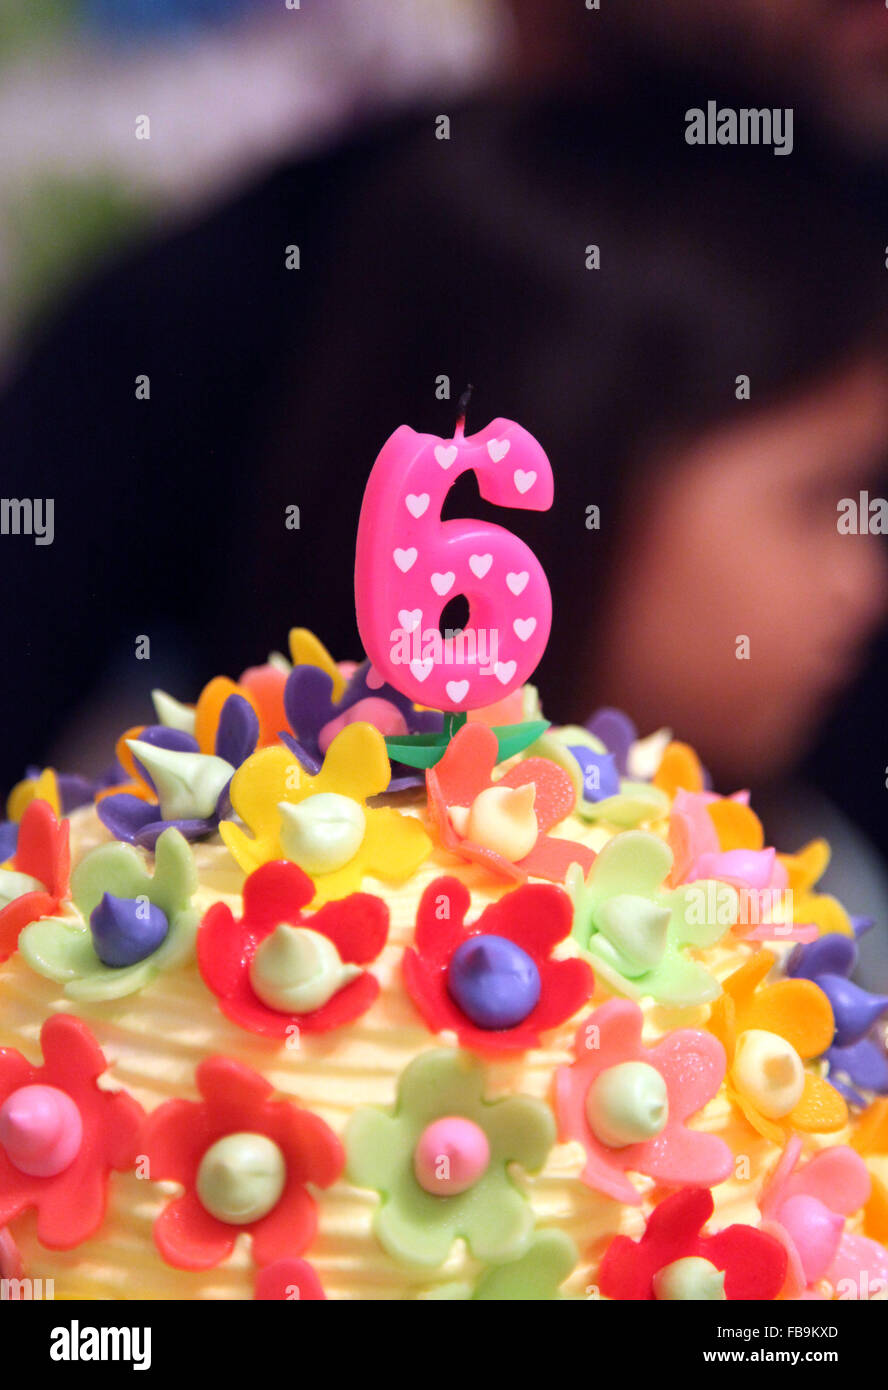 Its A Photo Of Birthday Cake For 6 Years Old Child